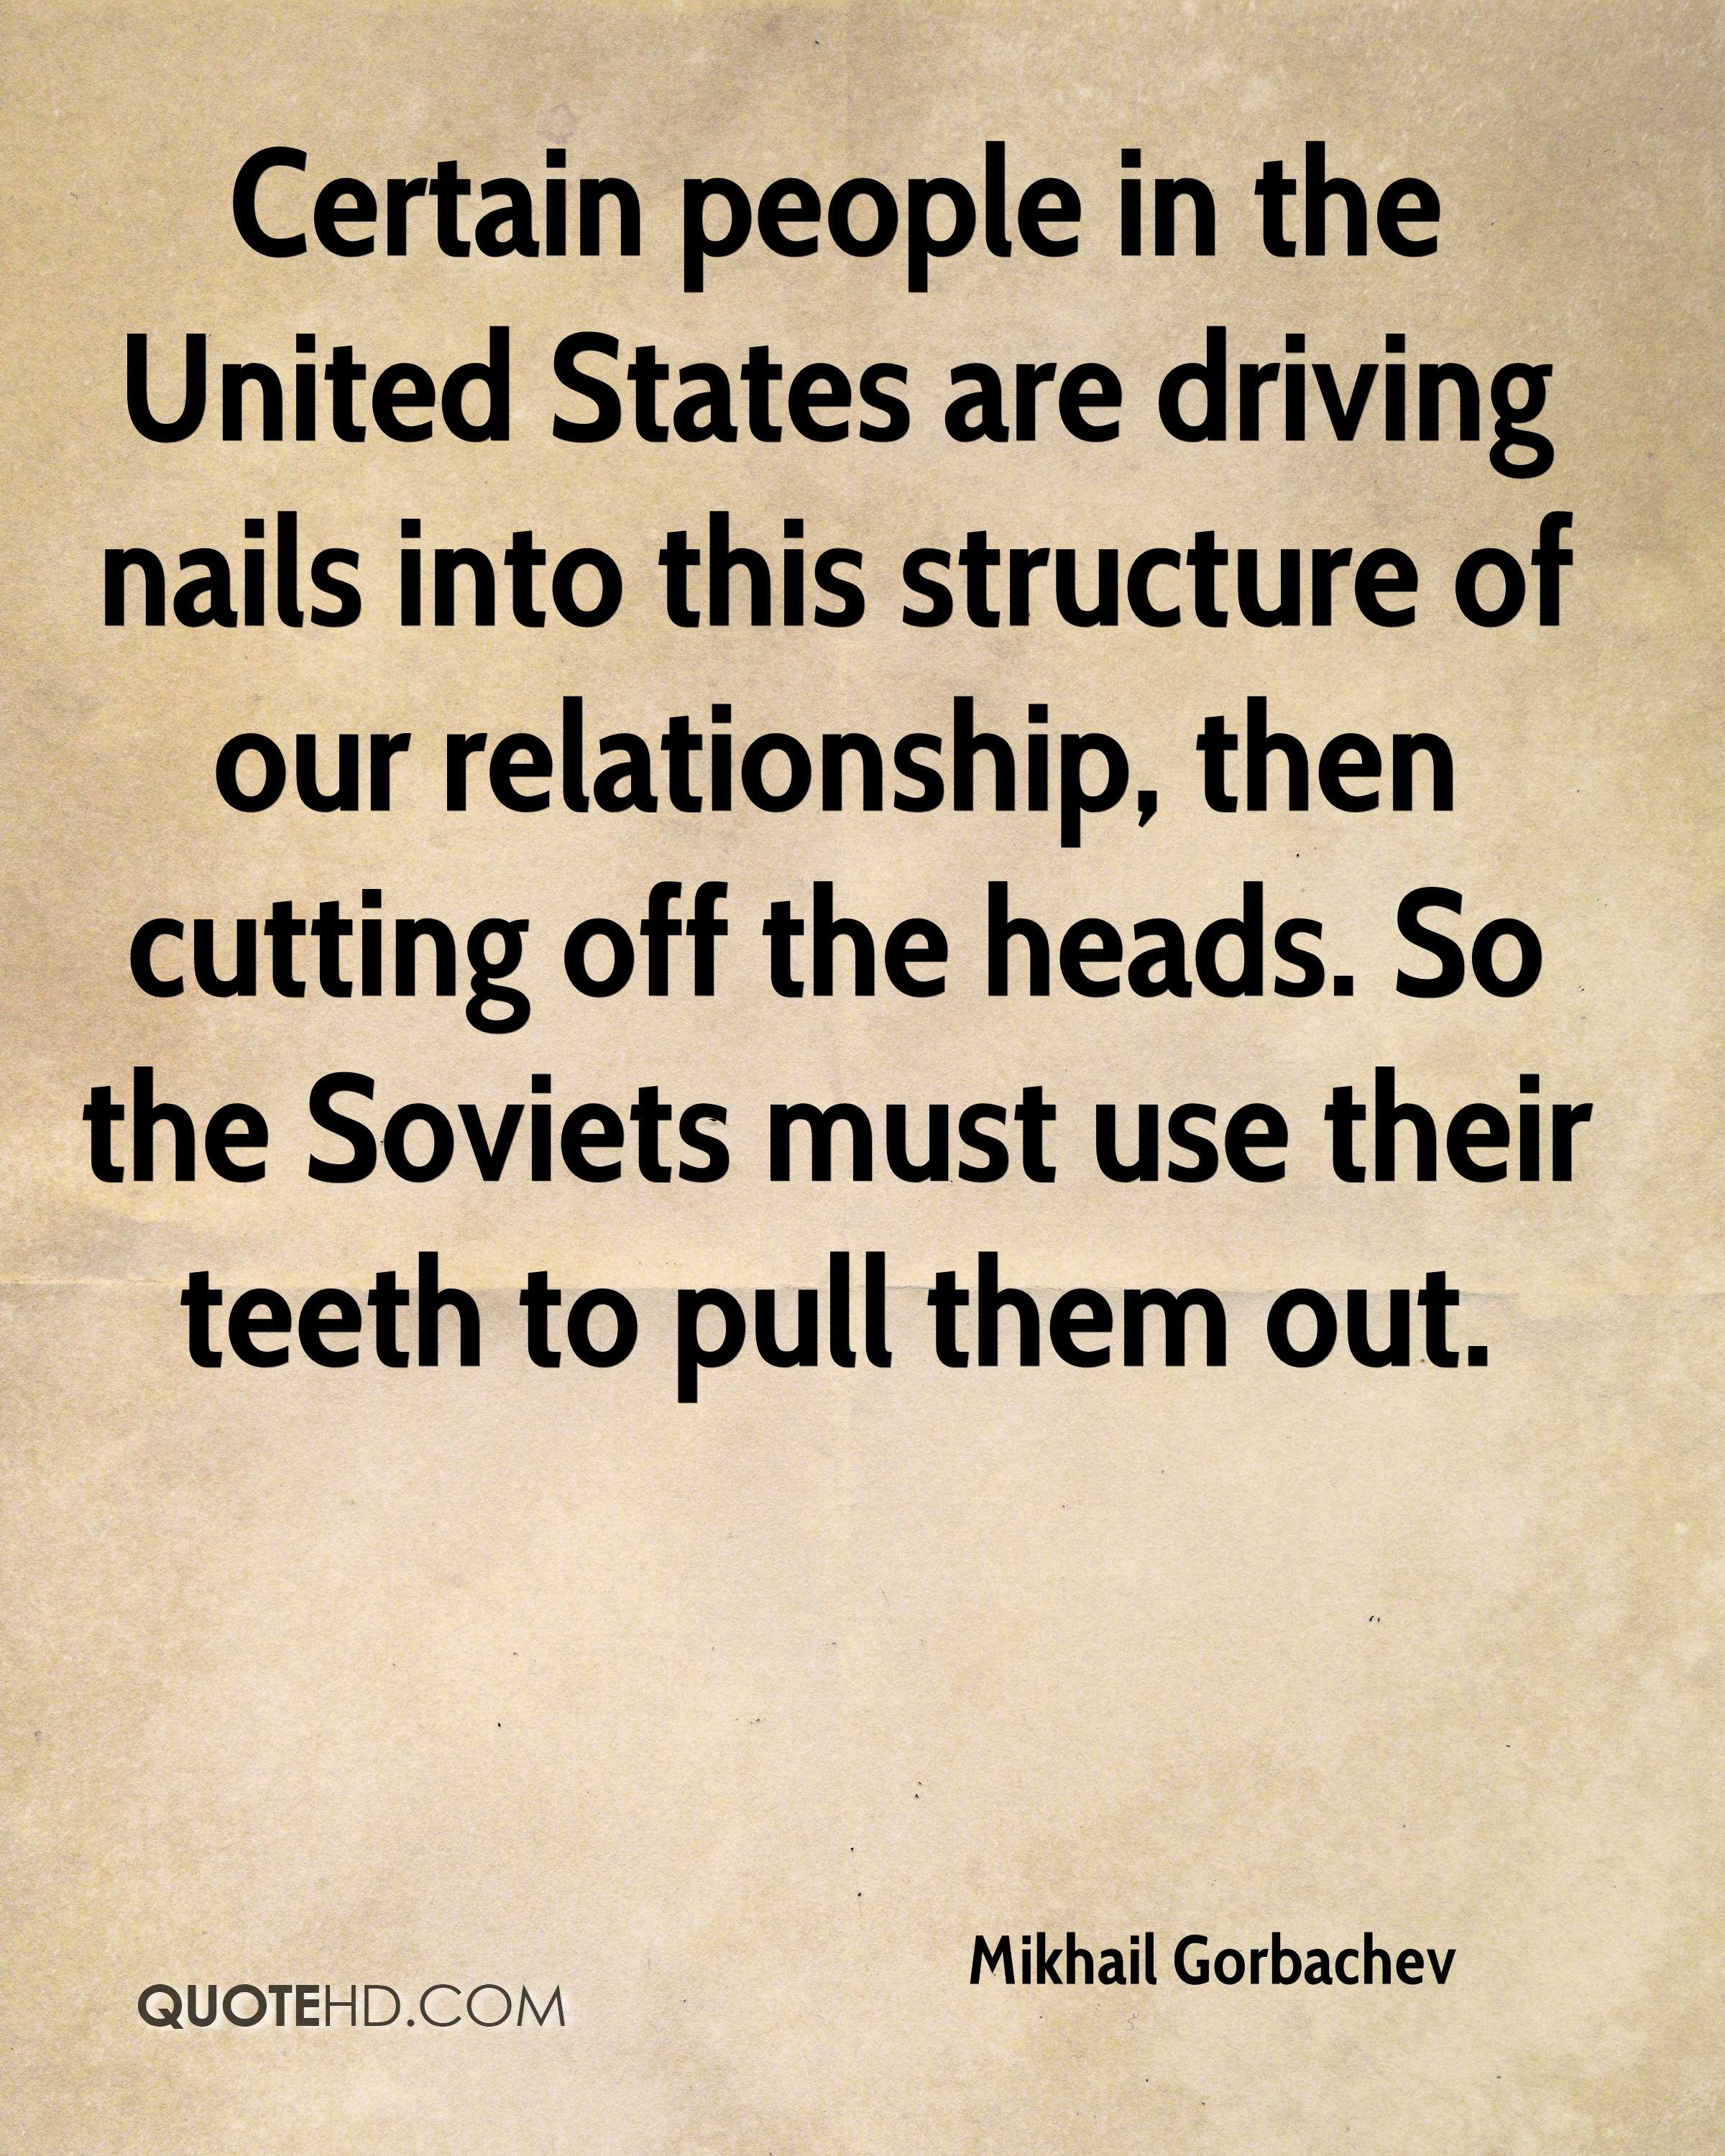 Certain people in the United States are driving nails into this structure of our relationship, then cutting off the heads. So the Soviets must use their teeth to pull them out.